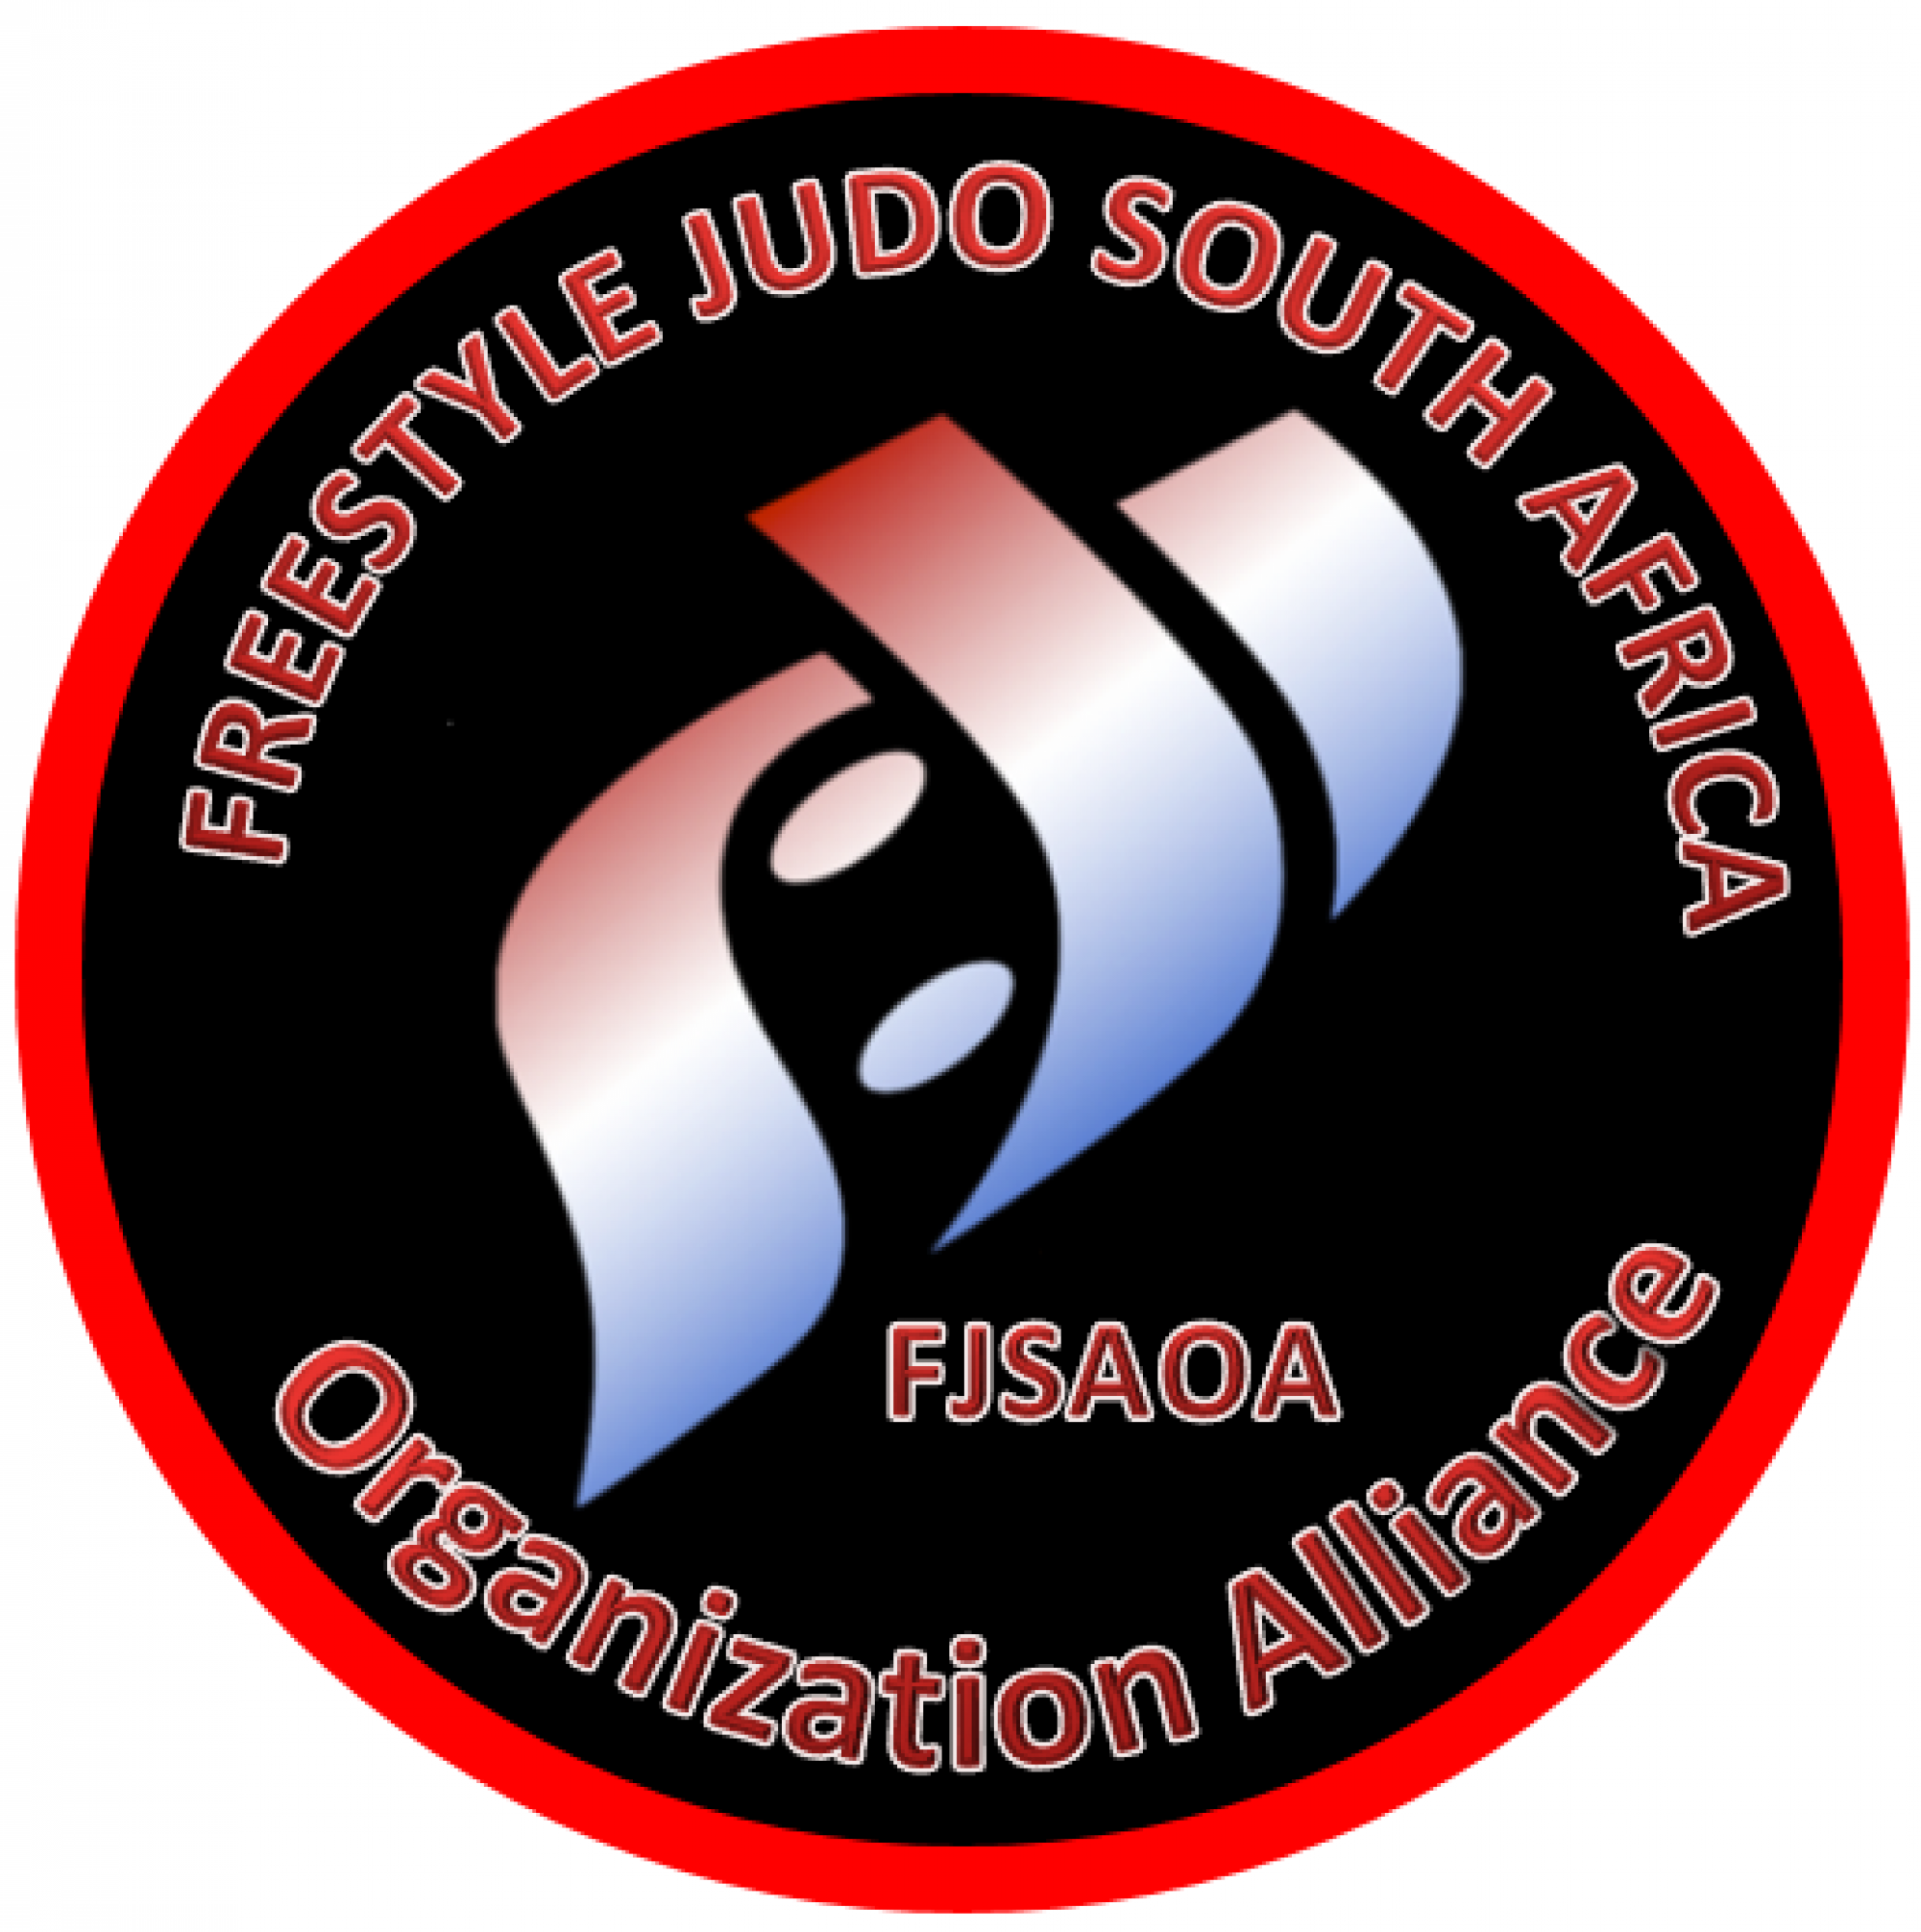 Freestyle Judo South African Alliance